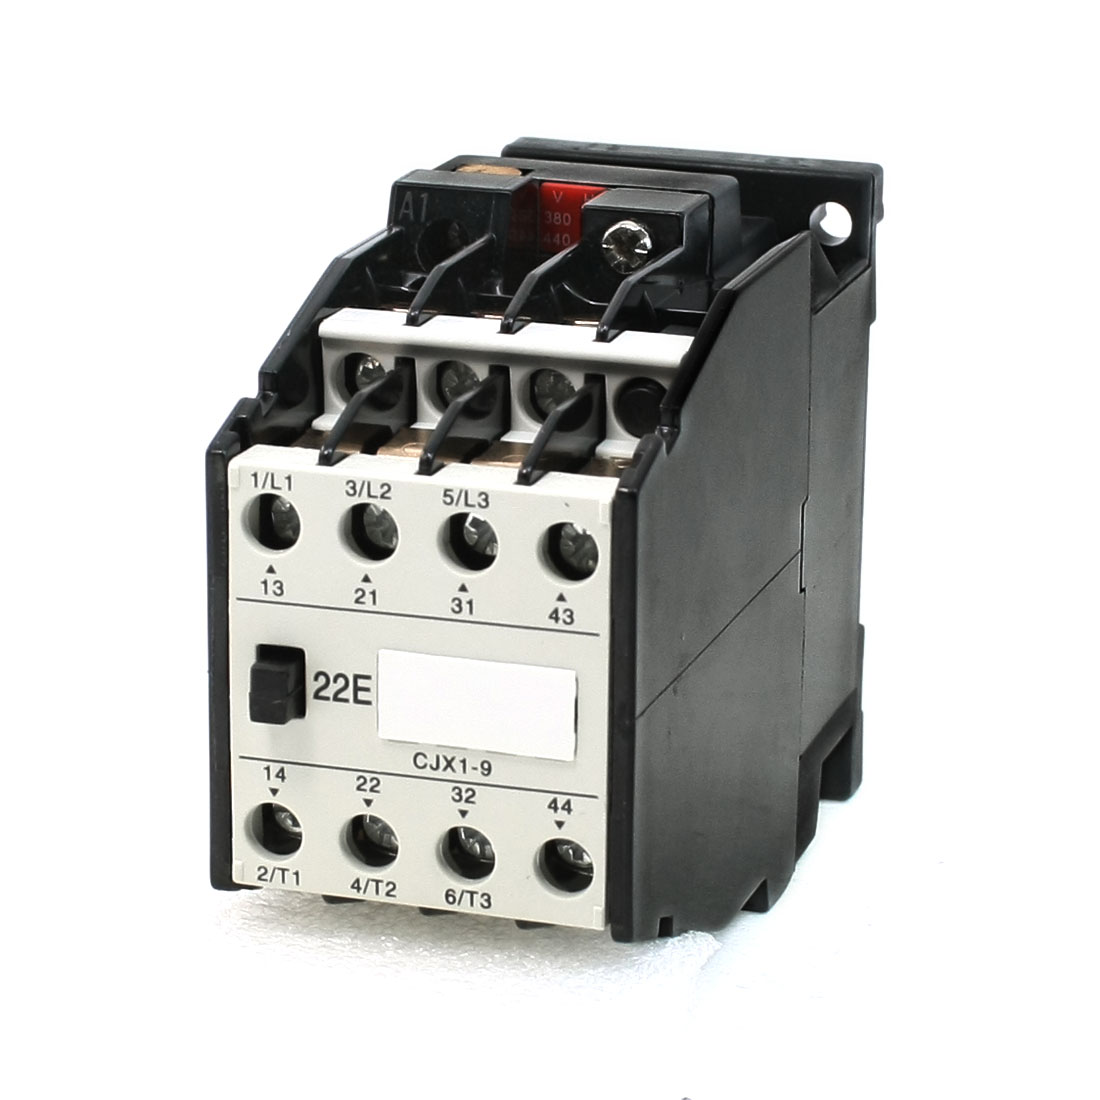 380V/440V Rated Coil Voltage 3 Phase 2NO+2NC CJX1-9/22 Model AC Contactor